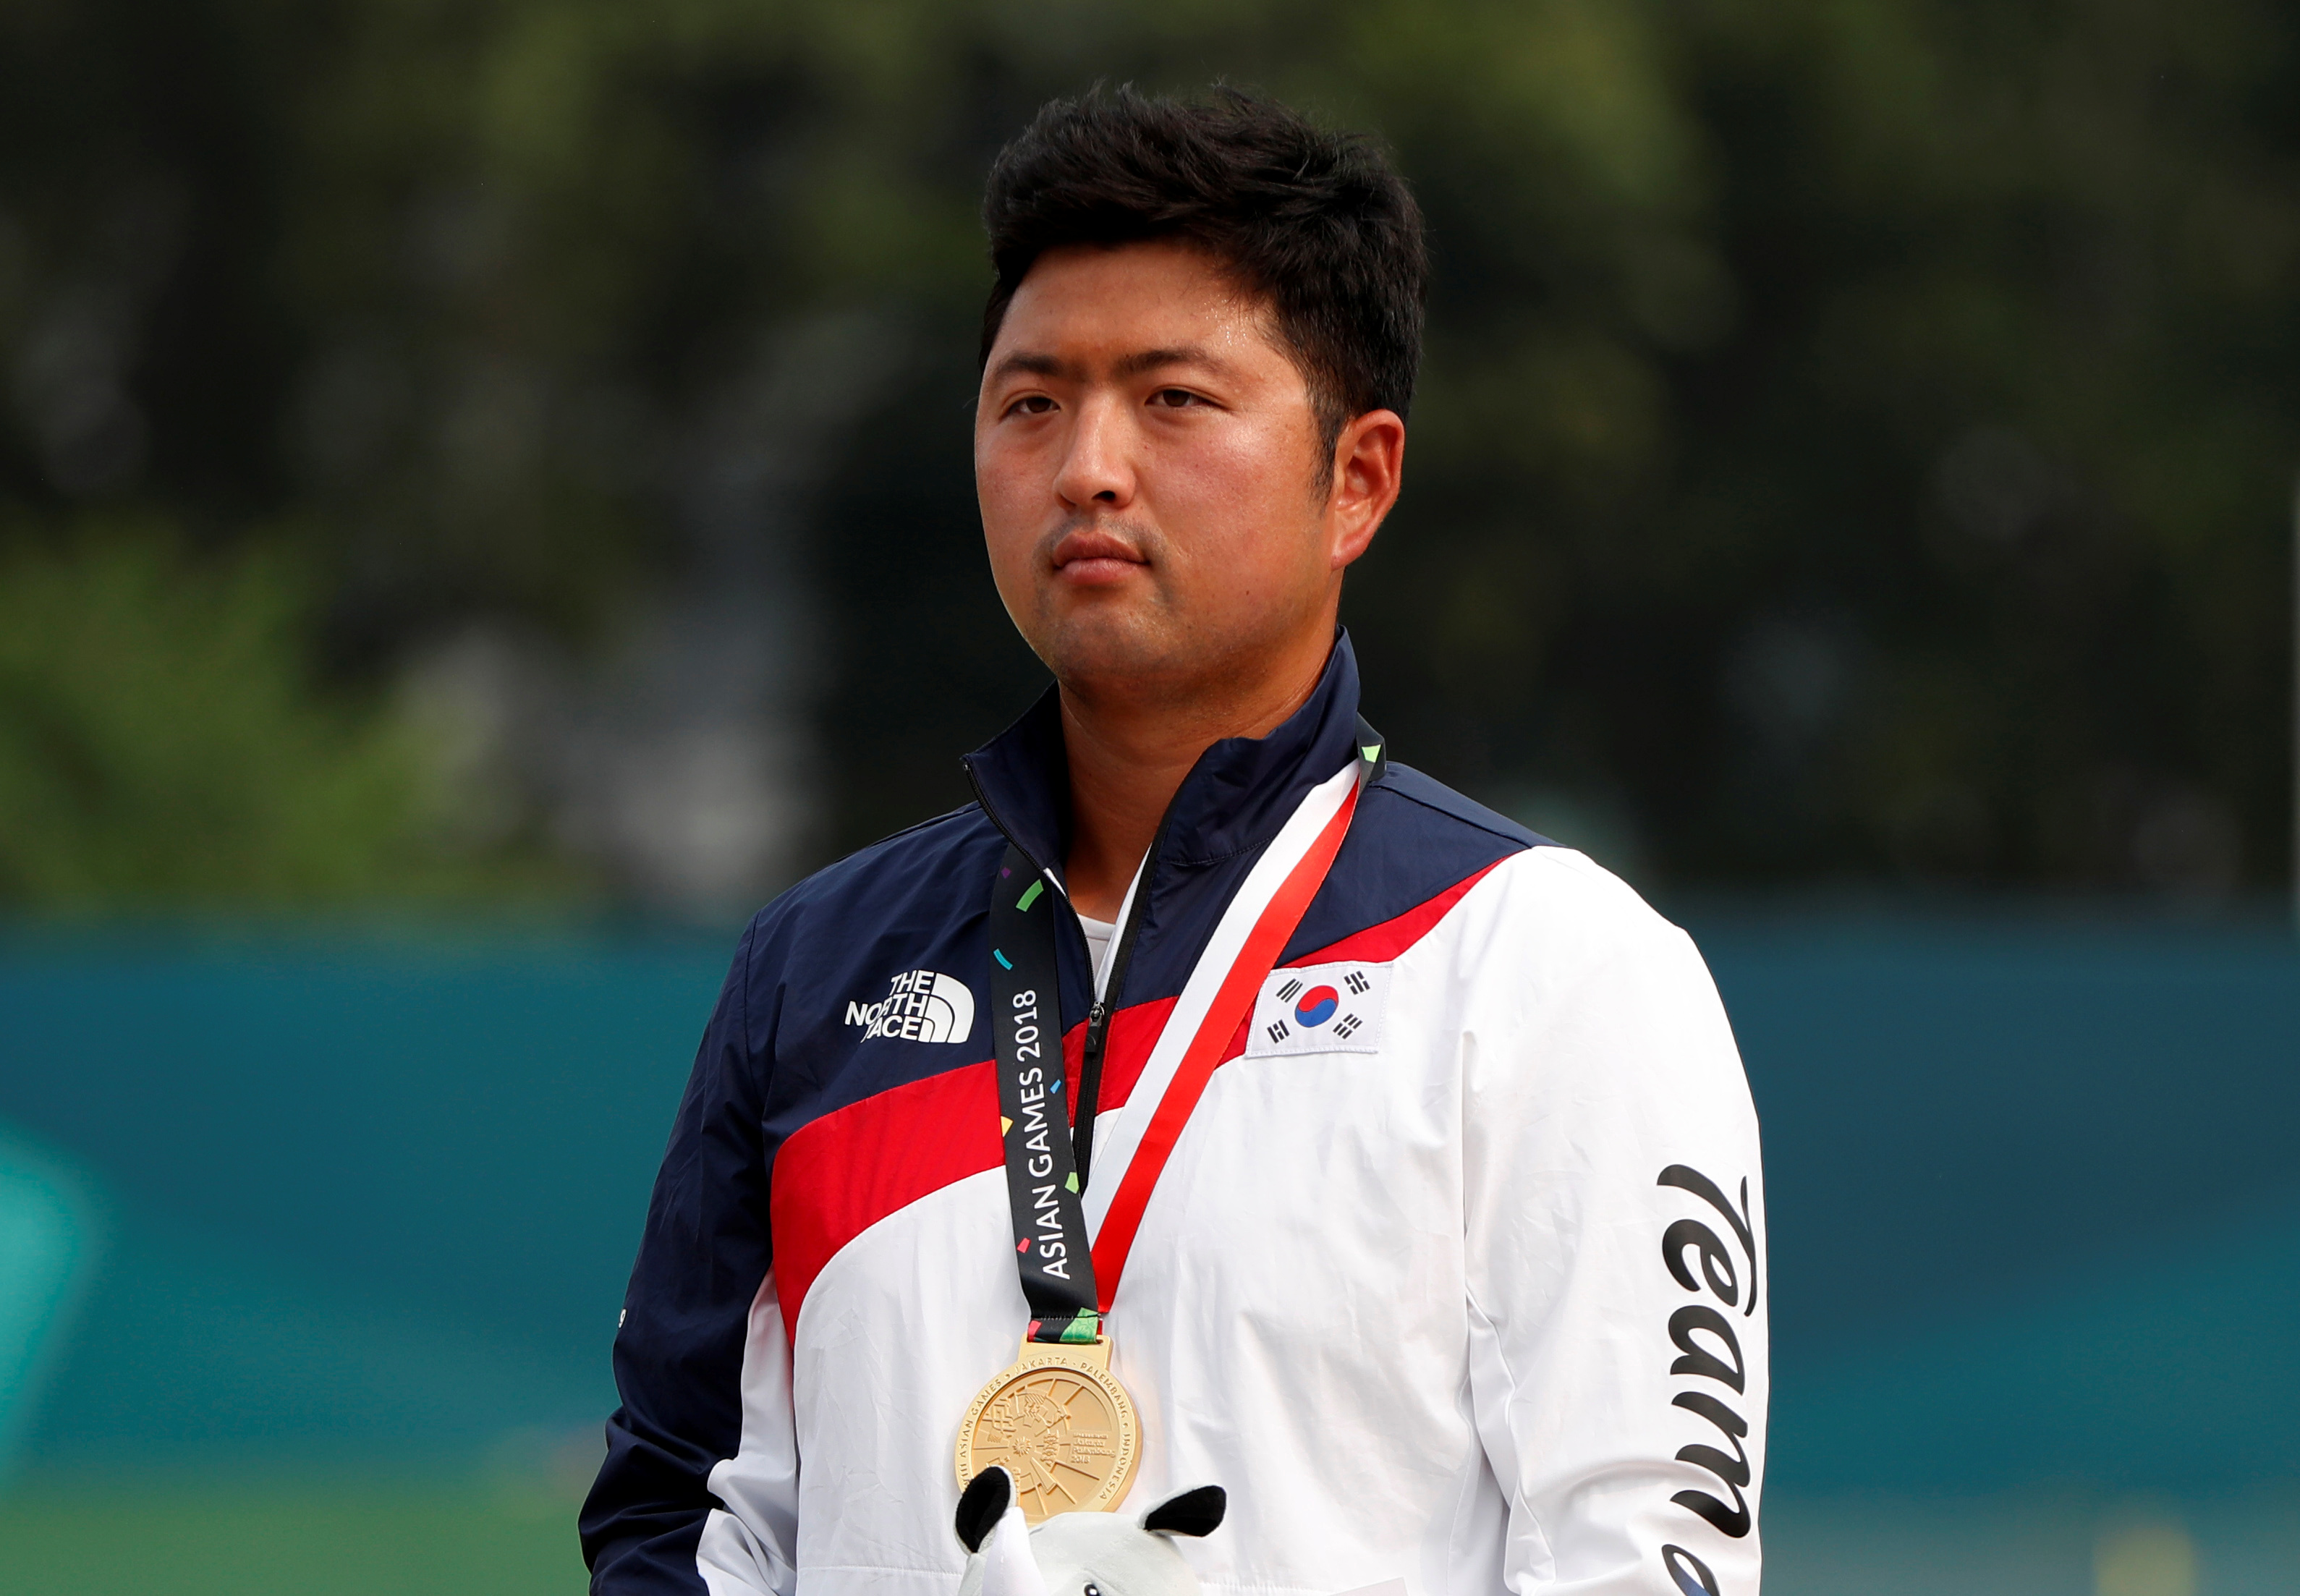 Archery - 2018 Asian Games - Recurve Men's Individual Finals - GBK Archery Field - Jakarta, Indonesia - August 28, 2018 - Gold Medallist Kim Woojin of South Korea poses with his medal. REUTERS/Issei Kato